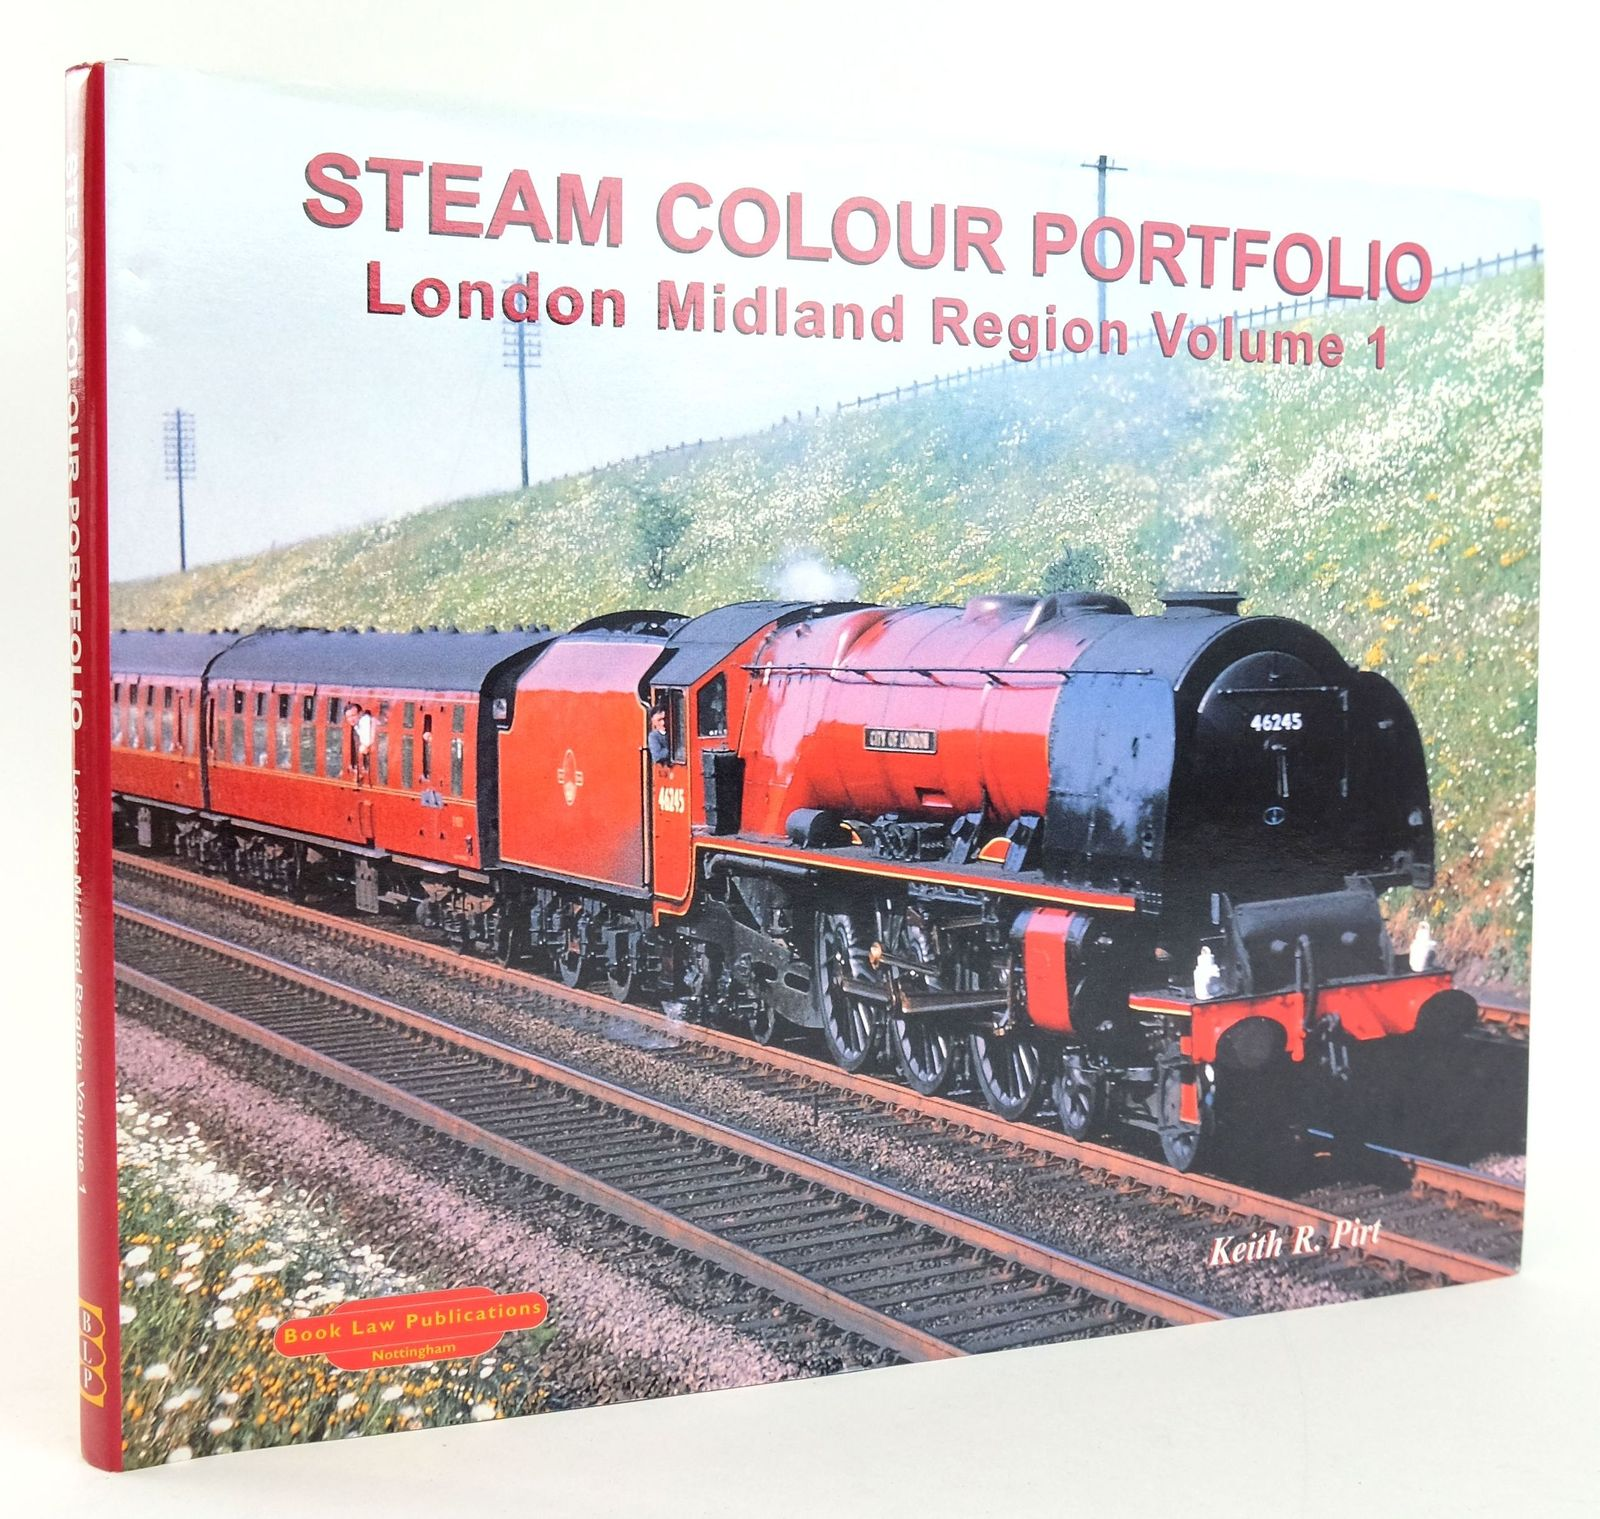 Photo of KEITH PIRT COLOUR PORTFOLIO: LONDON MIDLAND REGION written by Pirt, Keith R. published by Book Law Publications (STOCK CODE: 1820036)  for sale by Stella & Rose's Books